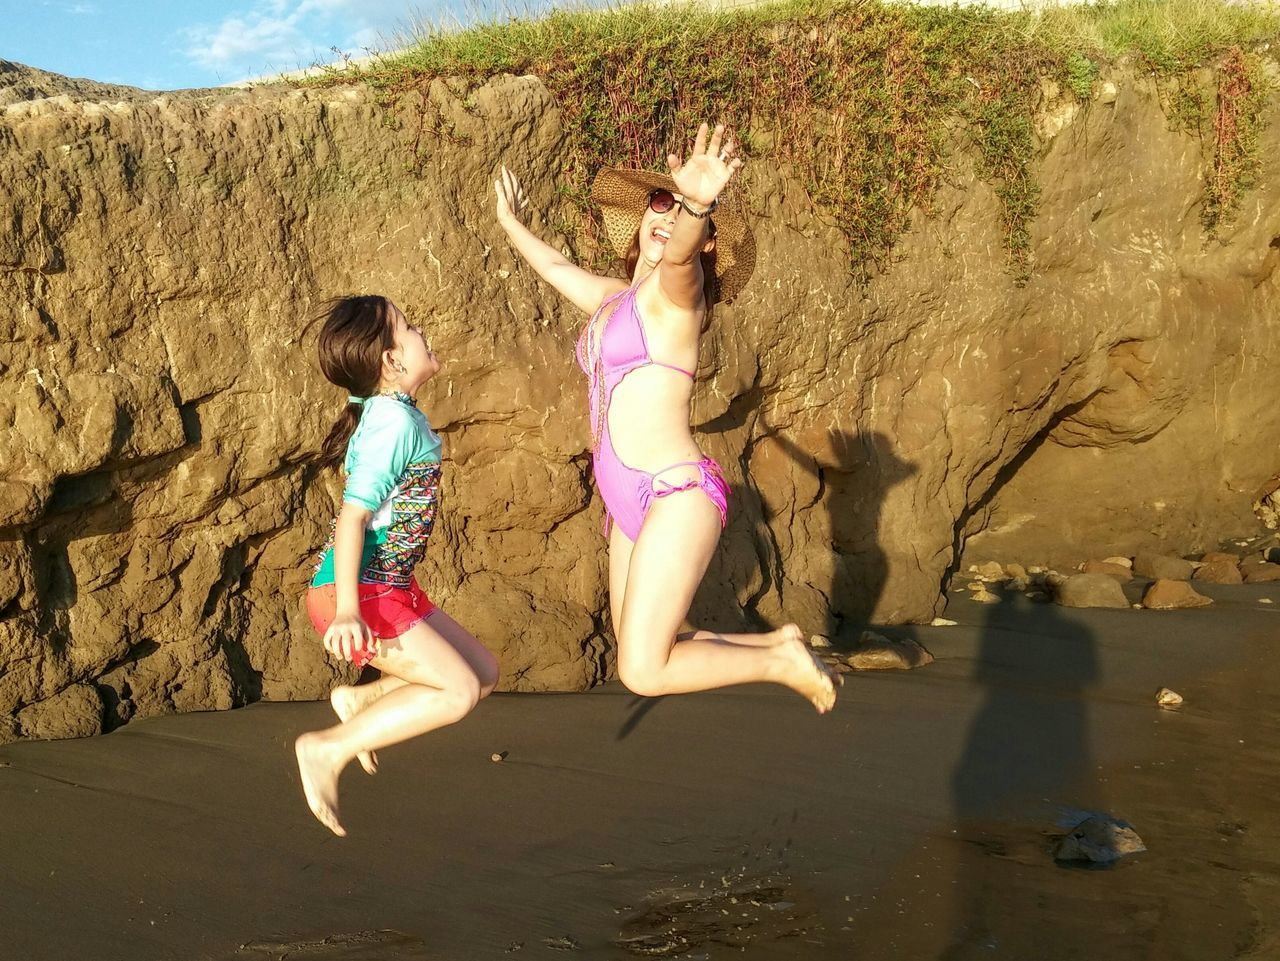 Live For The Story Sand Fun Summer Beach Togetherness Vacations Motion Outdoors Leisure Activity Two People Water Girls People Child Day Friendship Enjoyment Children Only Boys Females ecuador Ecuador Nature Photography Beauty In Nature Vacations